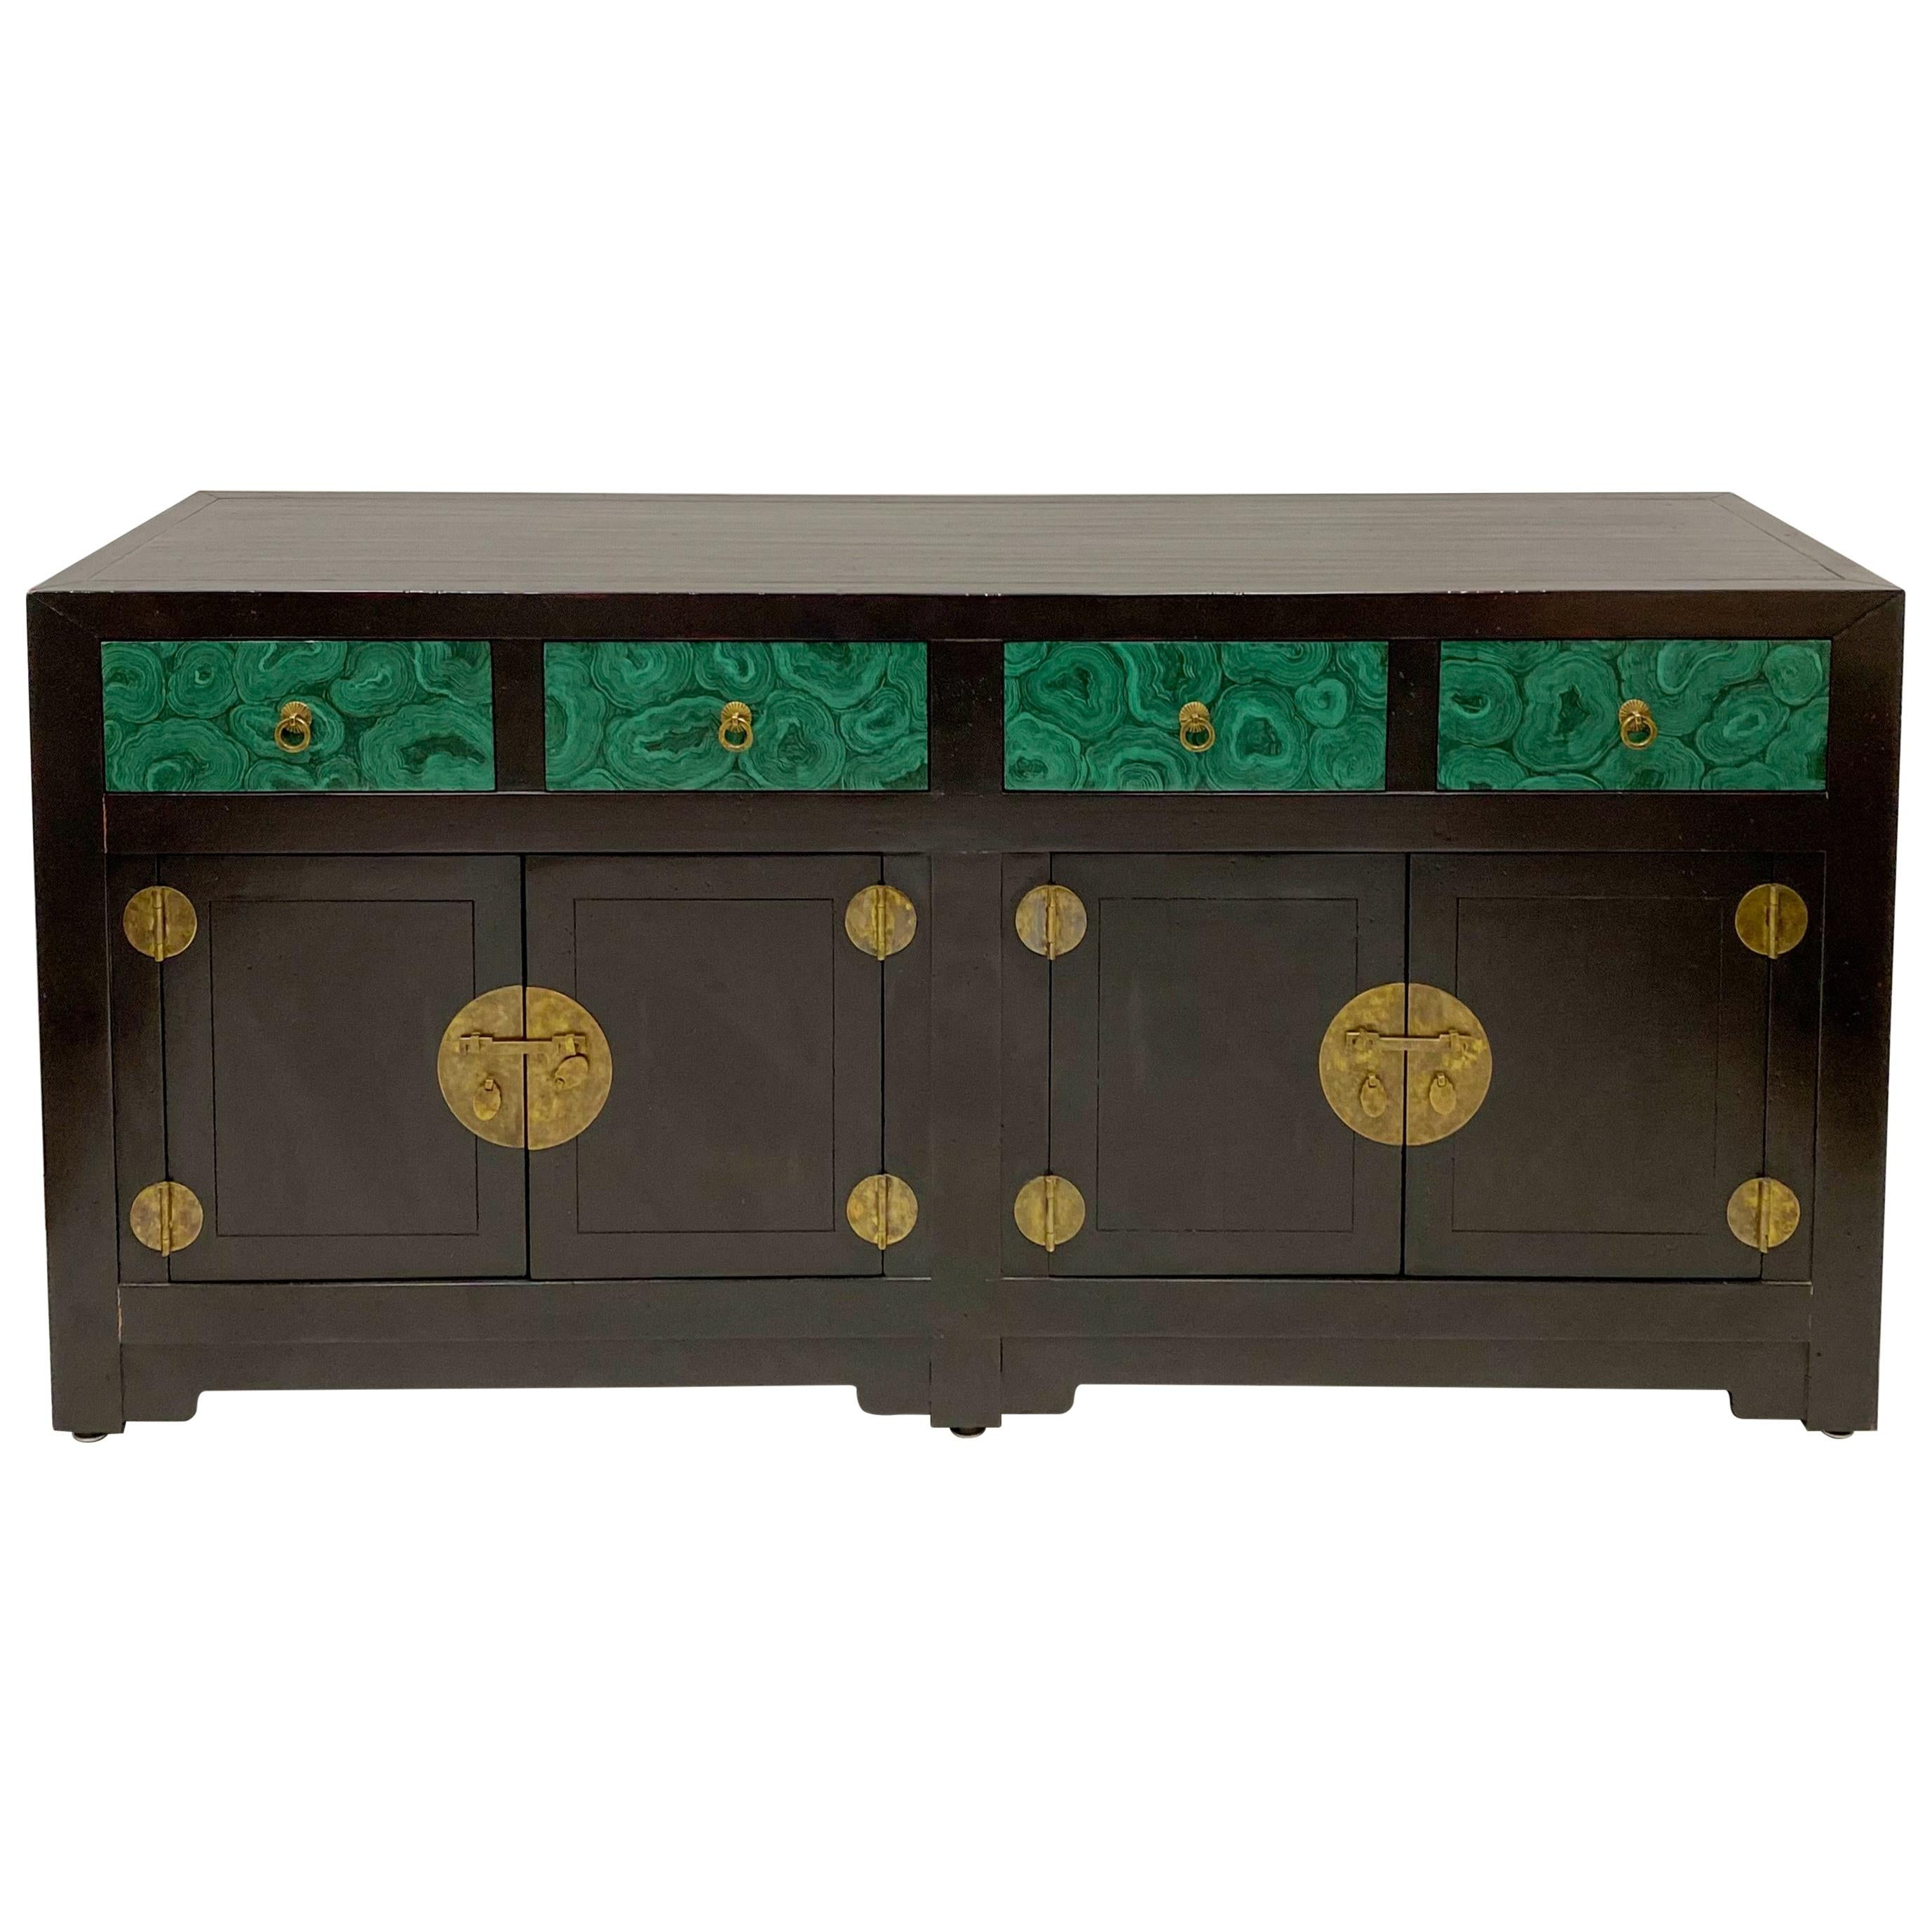 Asian Modern Style Credenza with Faux Malachite Accents by Henredon